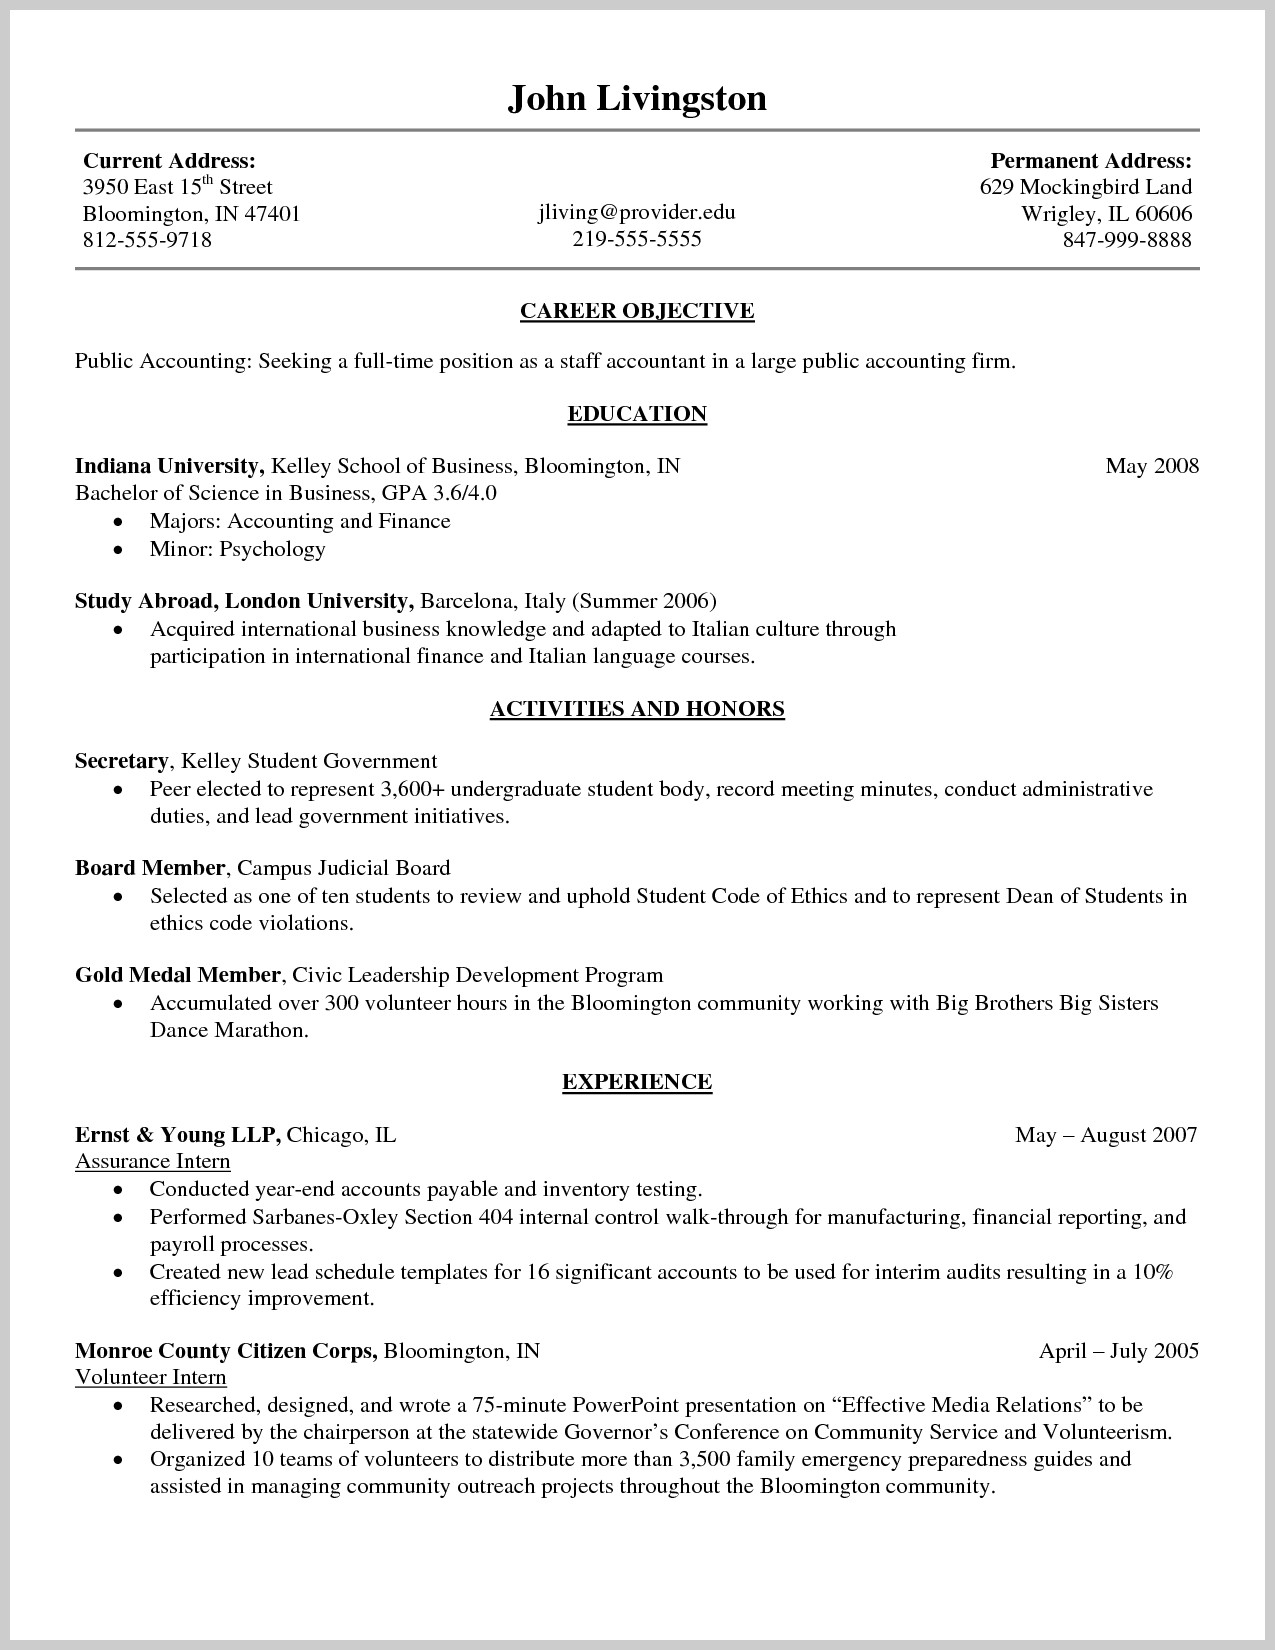 Leeds School Of Business Resume Template - Kelley School Business Resume Template Choice Image Business